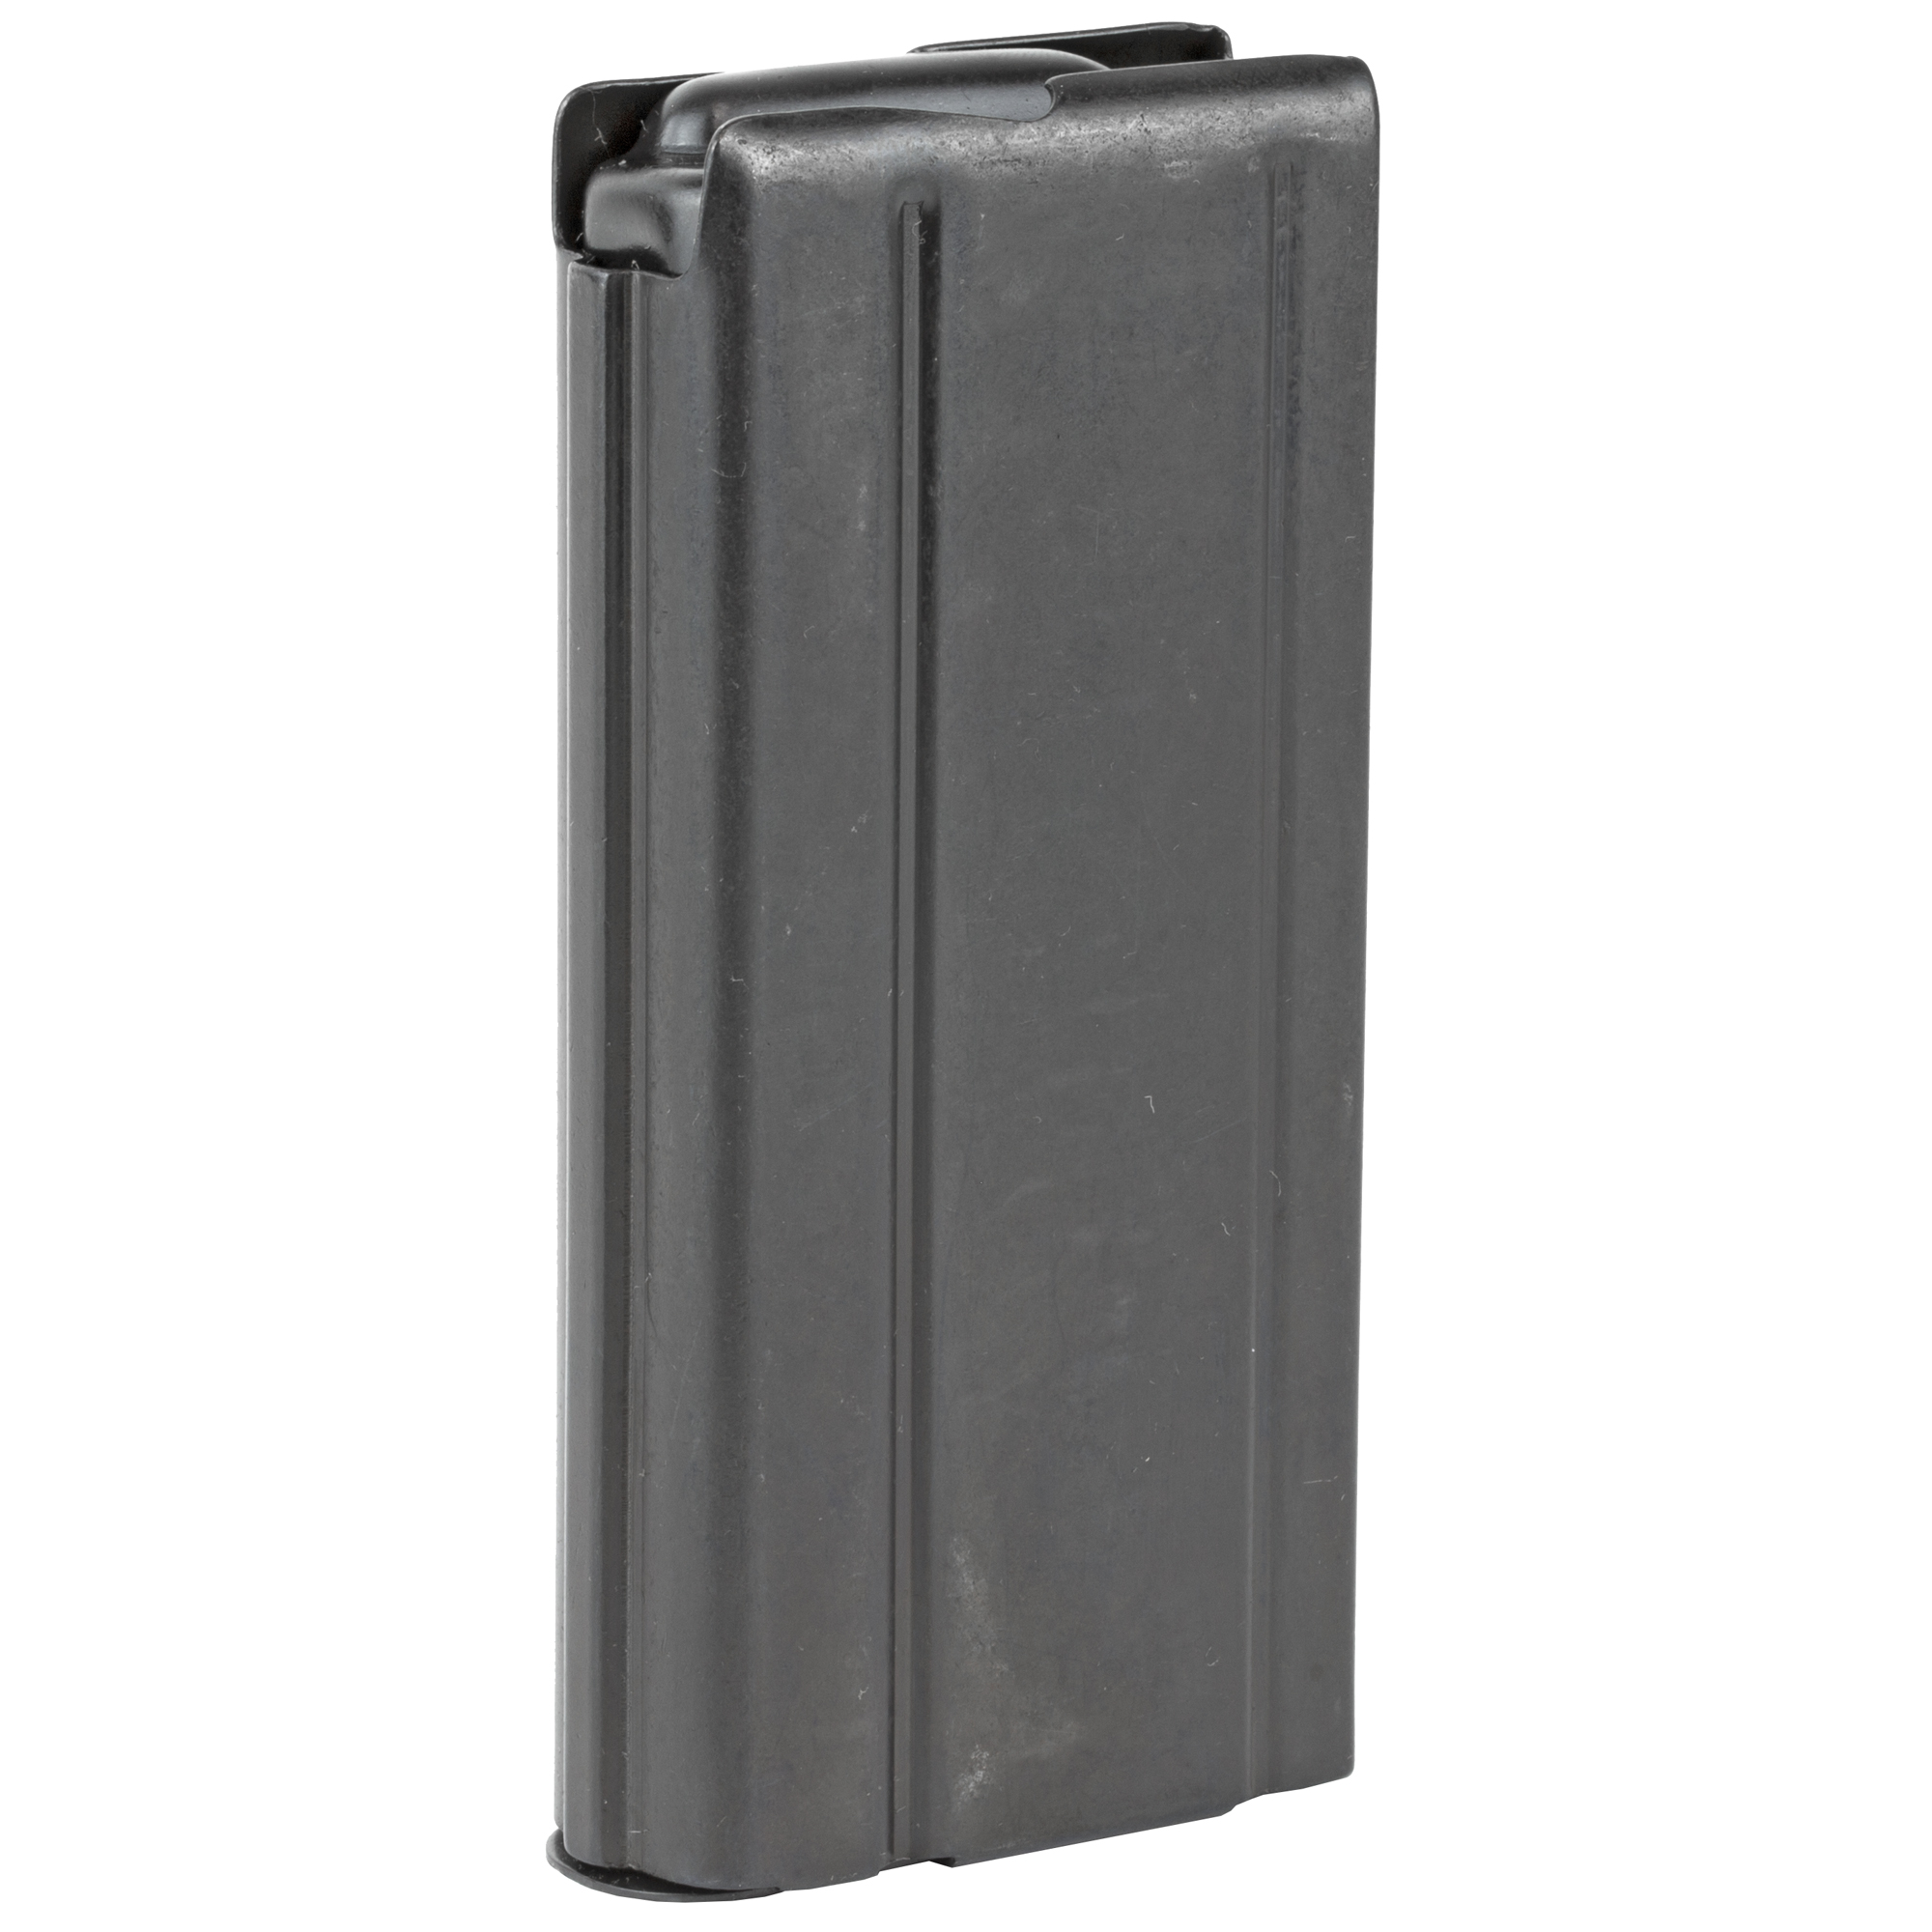 This Auto Ordnance M1 Carbine magazine is designed to hold 15 rounds of .30 Carbine ammunition and is made of steel.